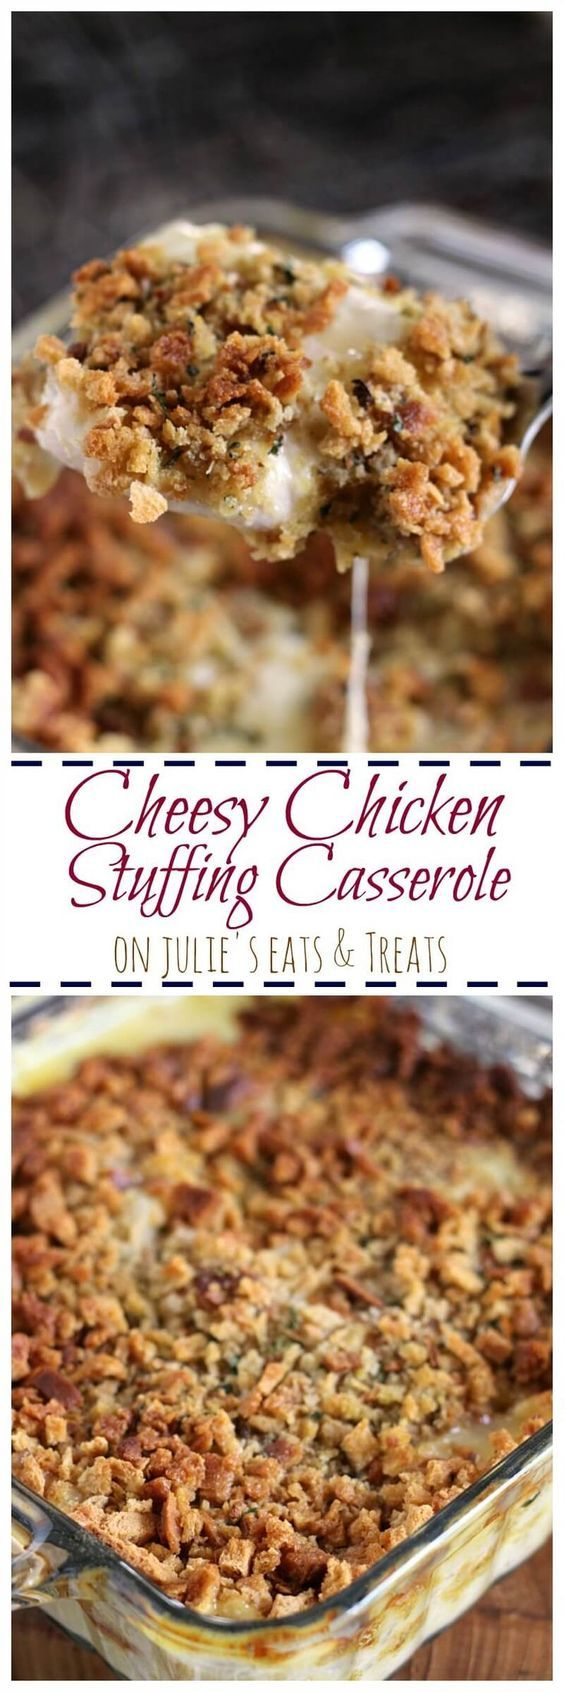 Cheesy Chicken Stuffing Casserole ~ Tender, Juicy Chicken Breast Topped with Cheese and Stuffing! Quick, Easy Weeknight Recipe!